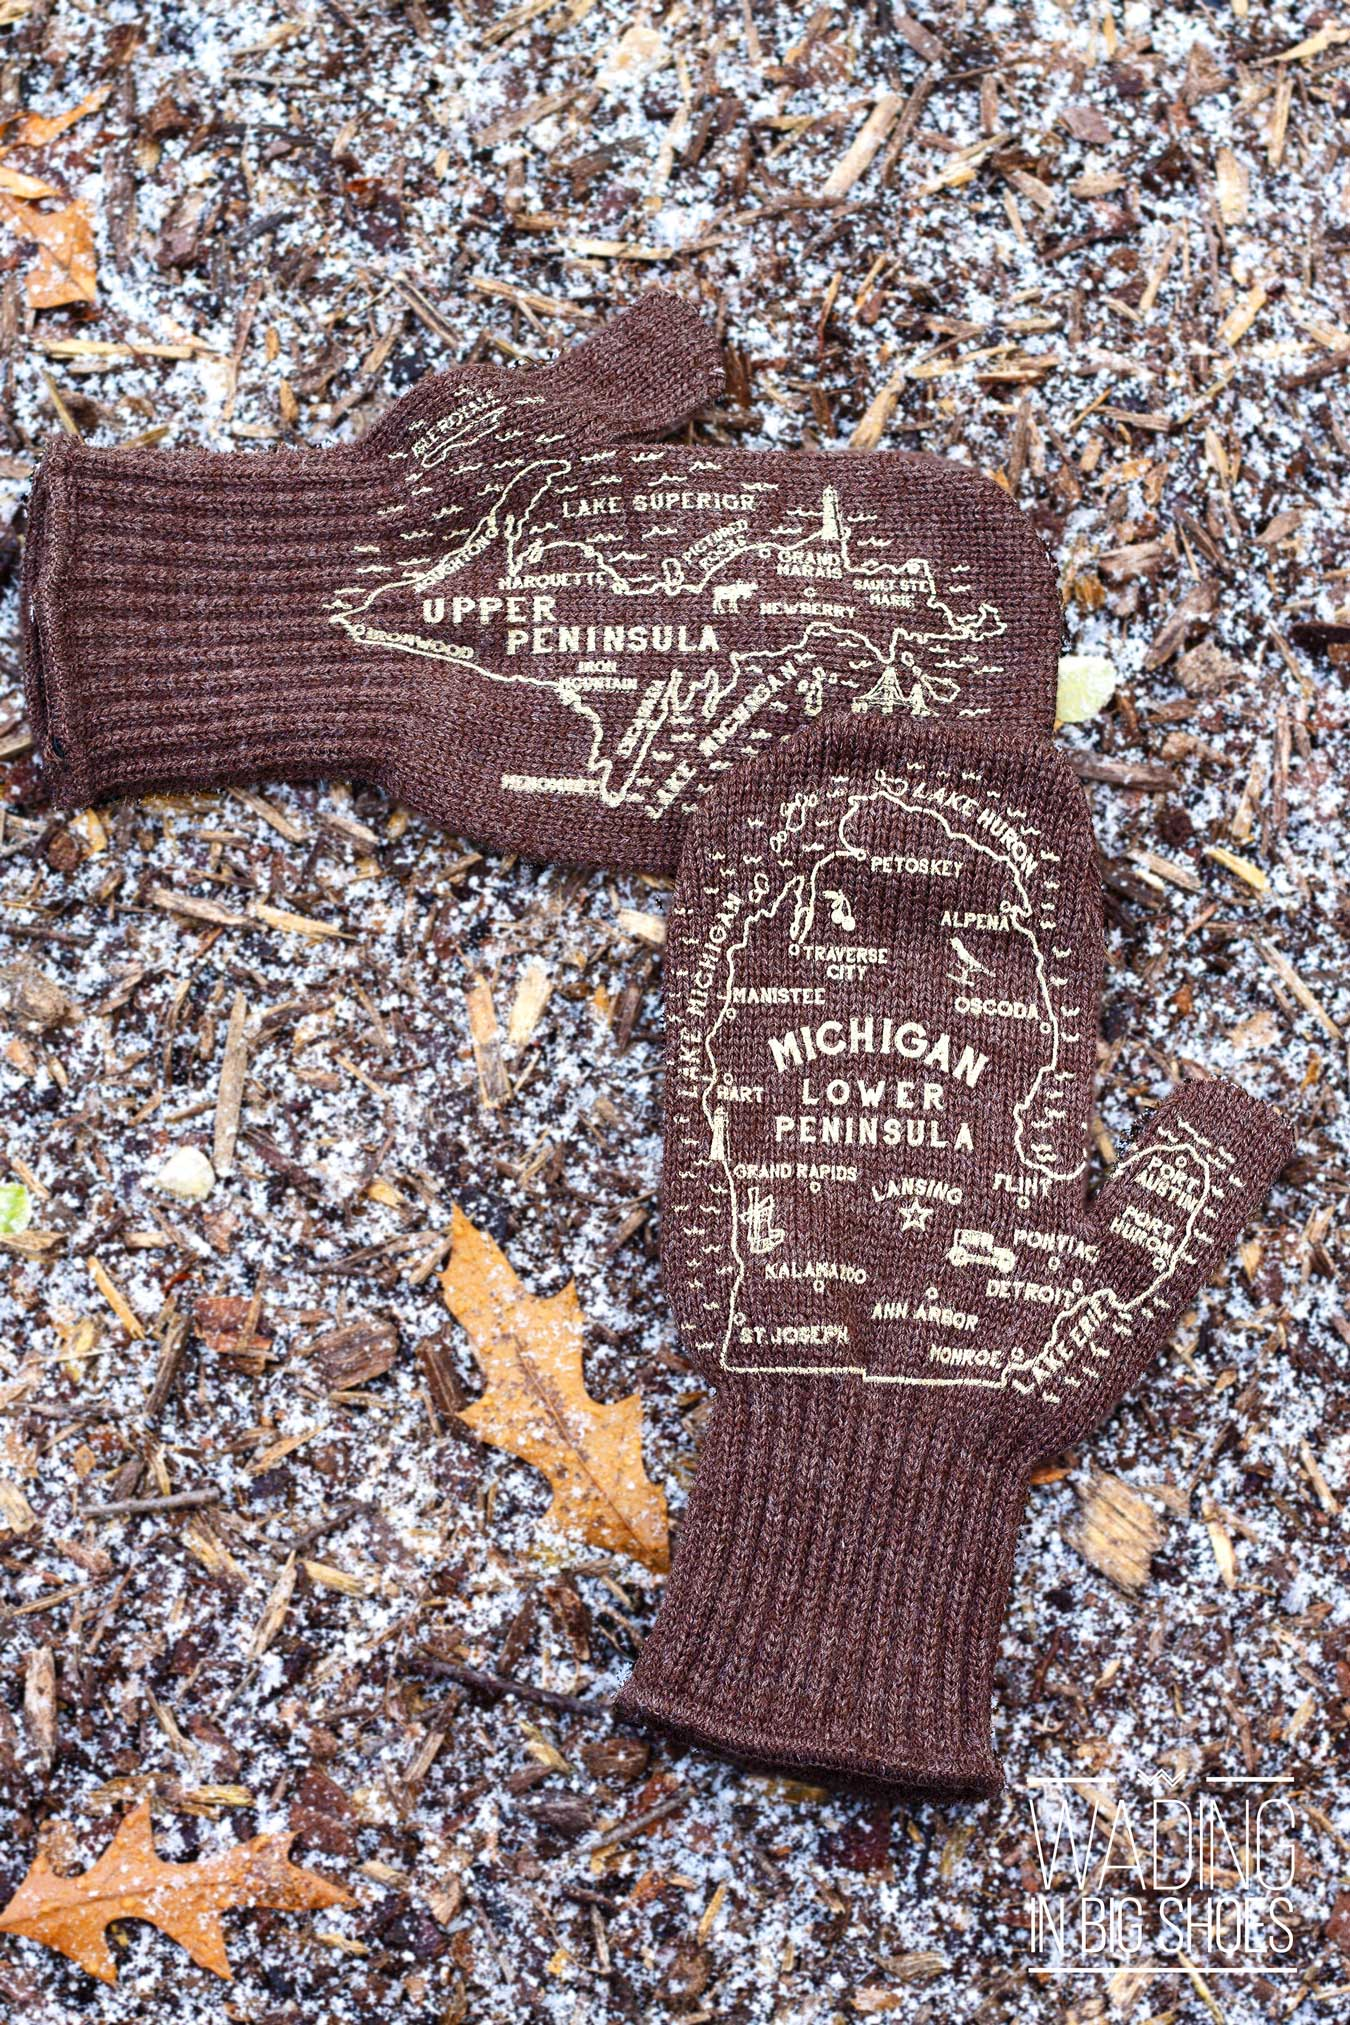 Getting Cozy At Home With Michigan Mittens | via Wading in Big Shoes